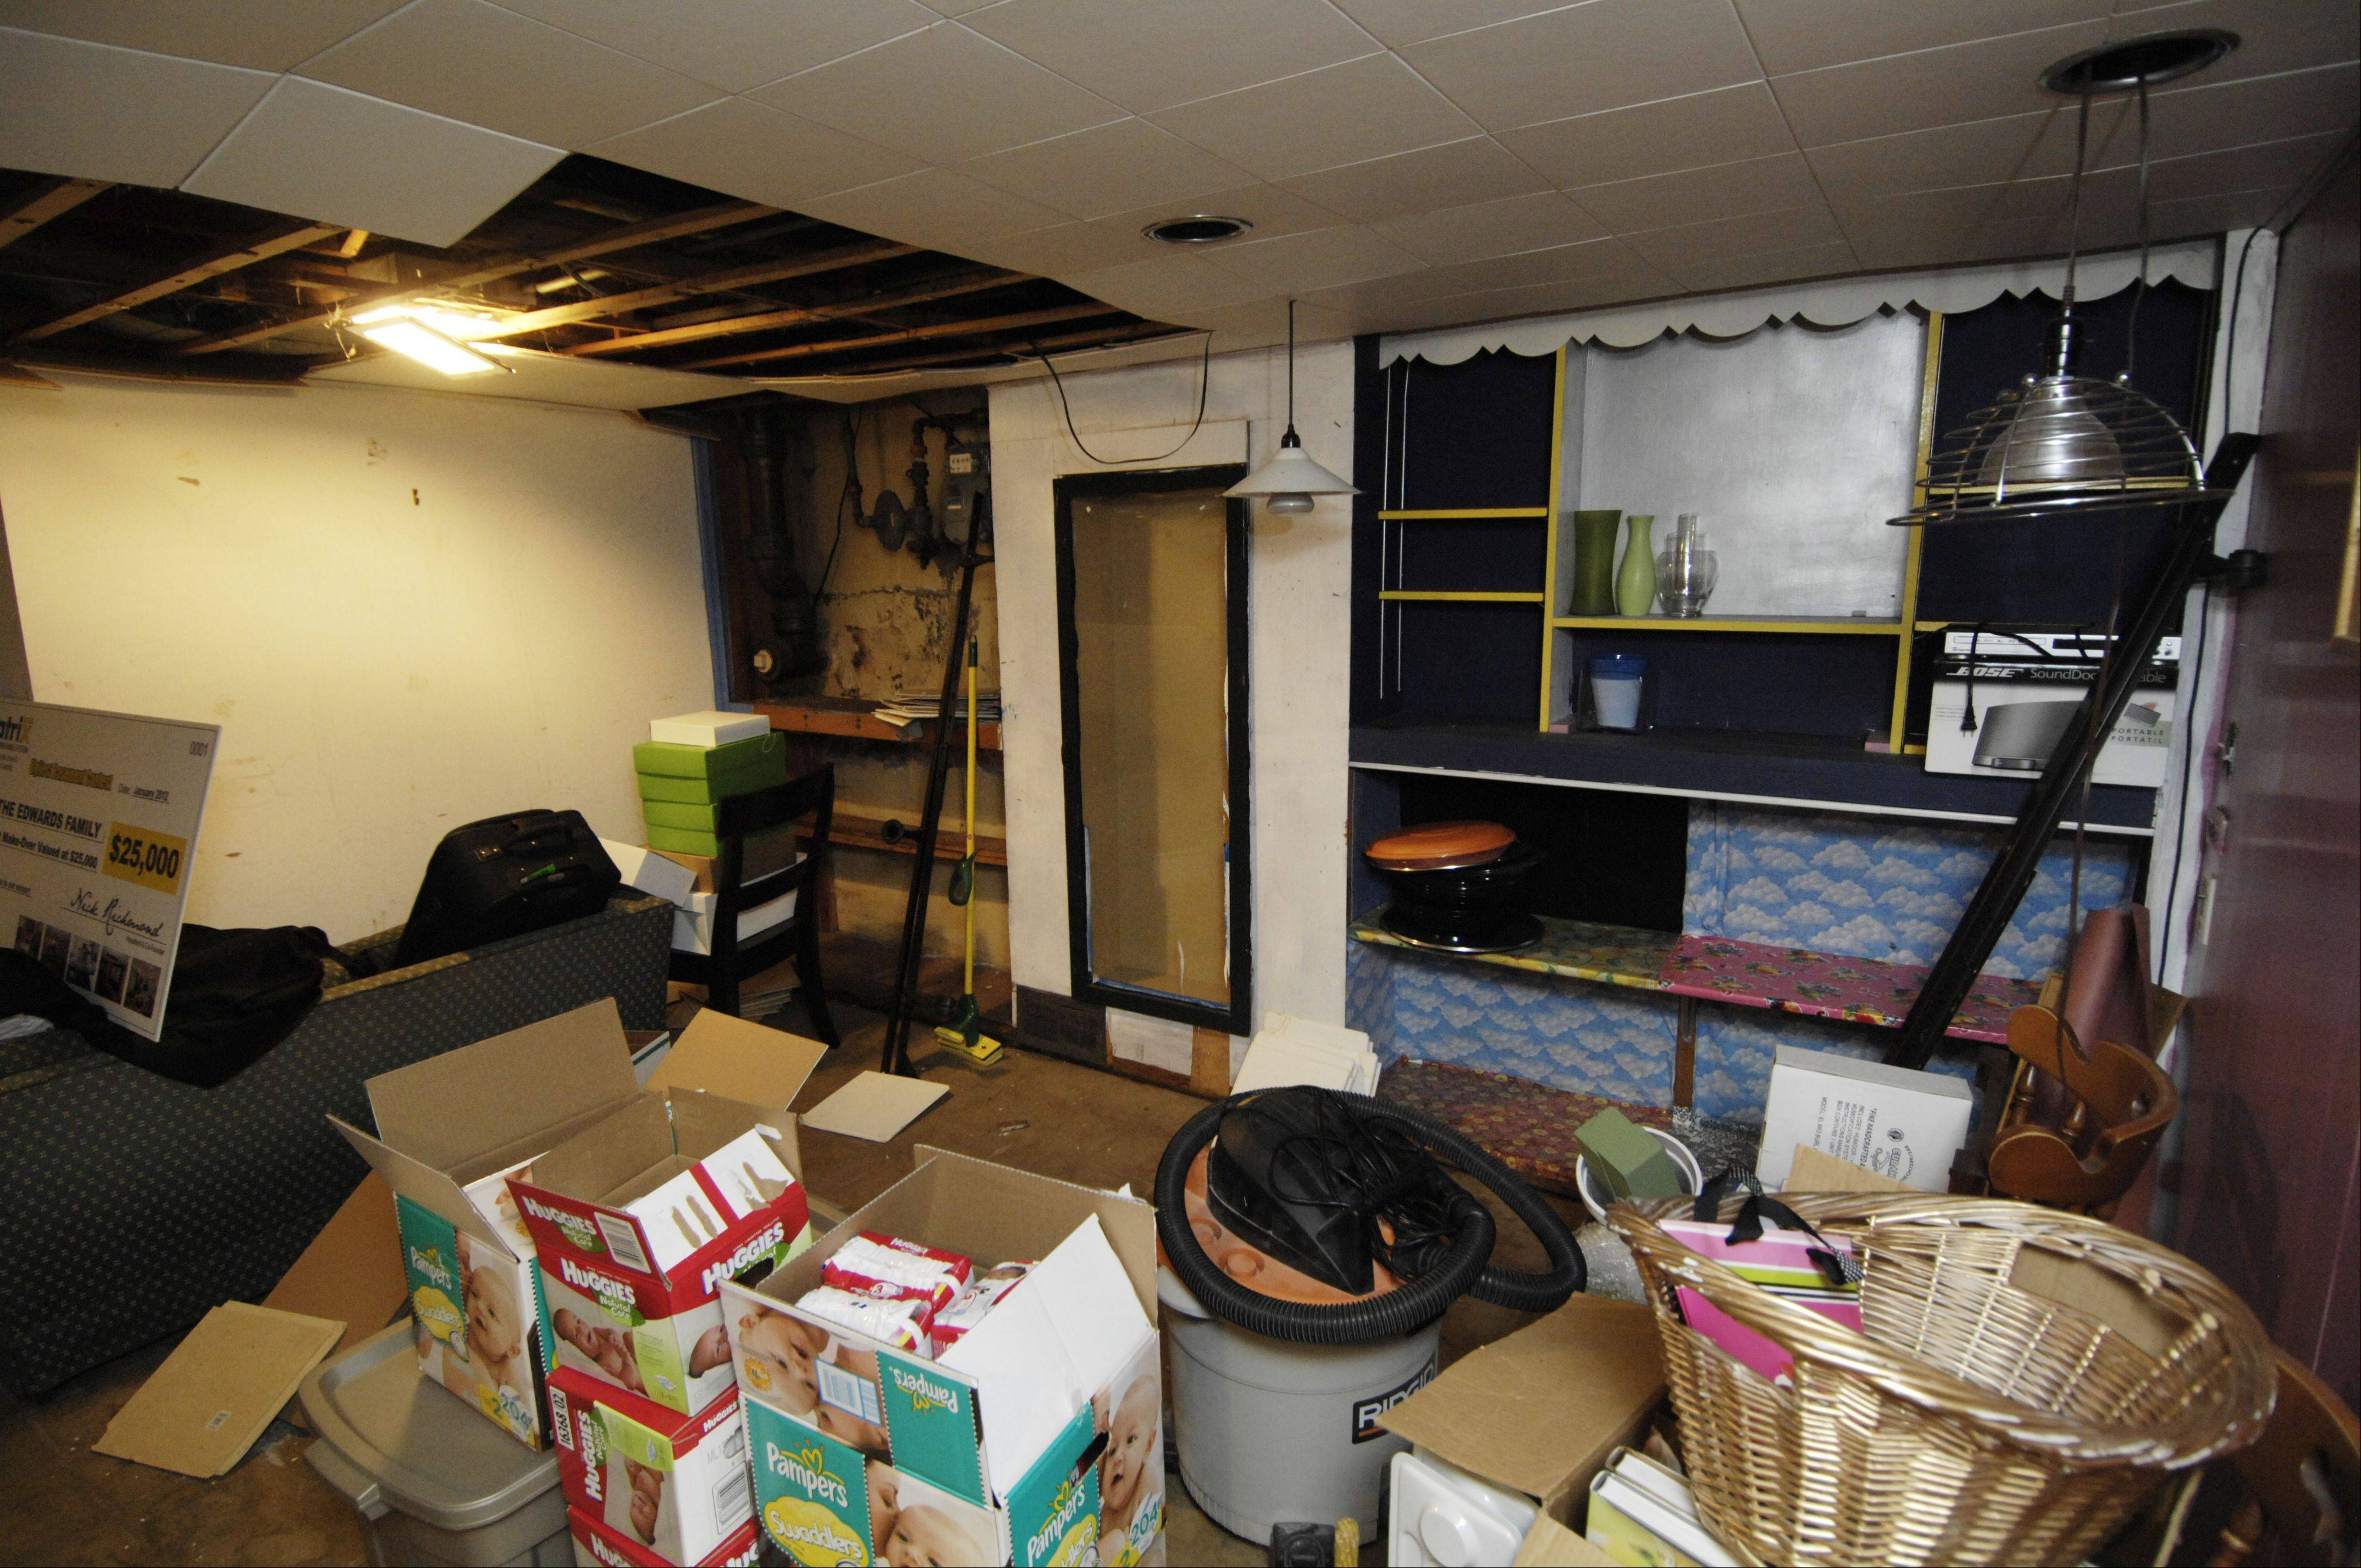 Before winning the basement makeover, Arlington Heights residents Matt and Anne Edwards primarily used their basement for storage.